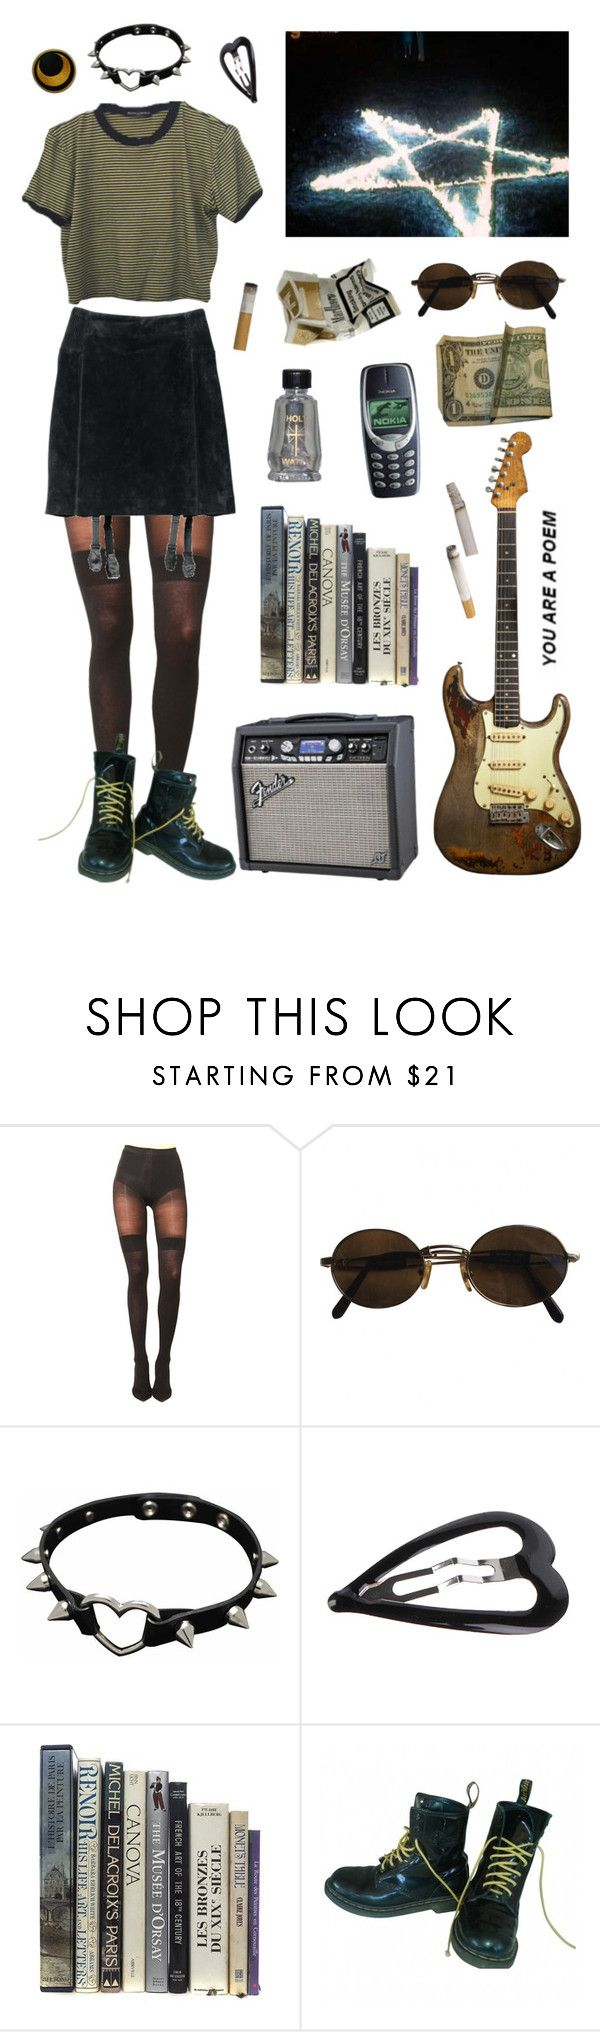 """Pentagram p o i s o n."" by aestheticgrunge ❤ liked on Polyvore featuring Pretty Polly, Moschino, H&M, Forever 21 and Dr. Martens"